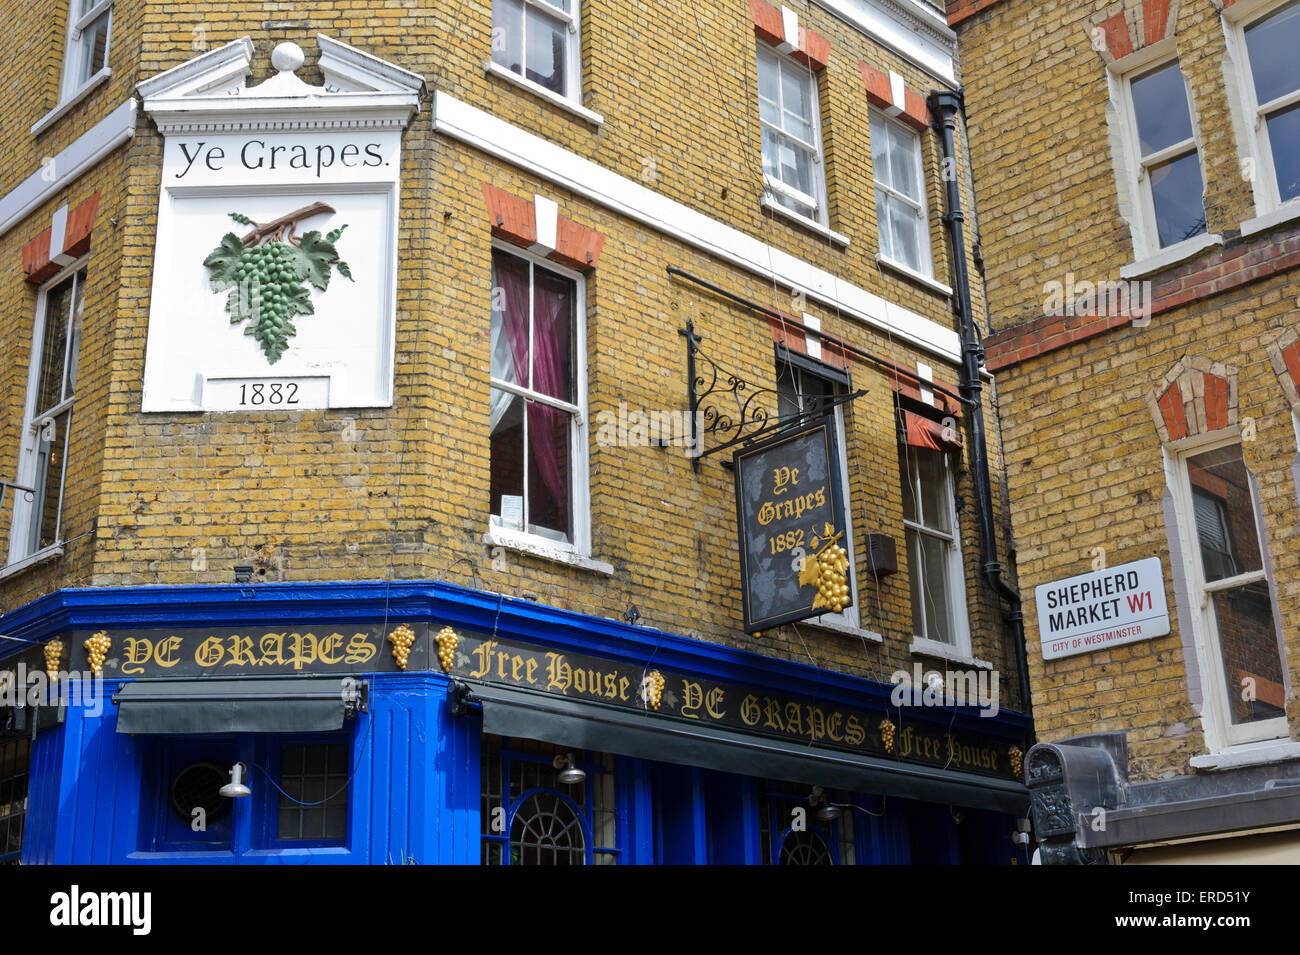 'Ye Grapes' a famous public house in London, England, United Kingdom. - Stock Image